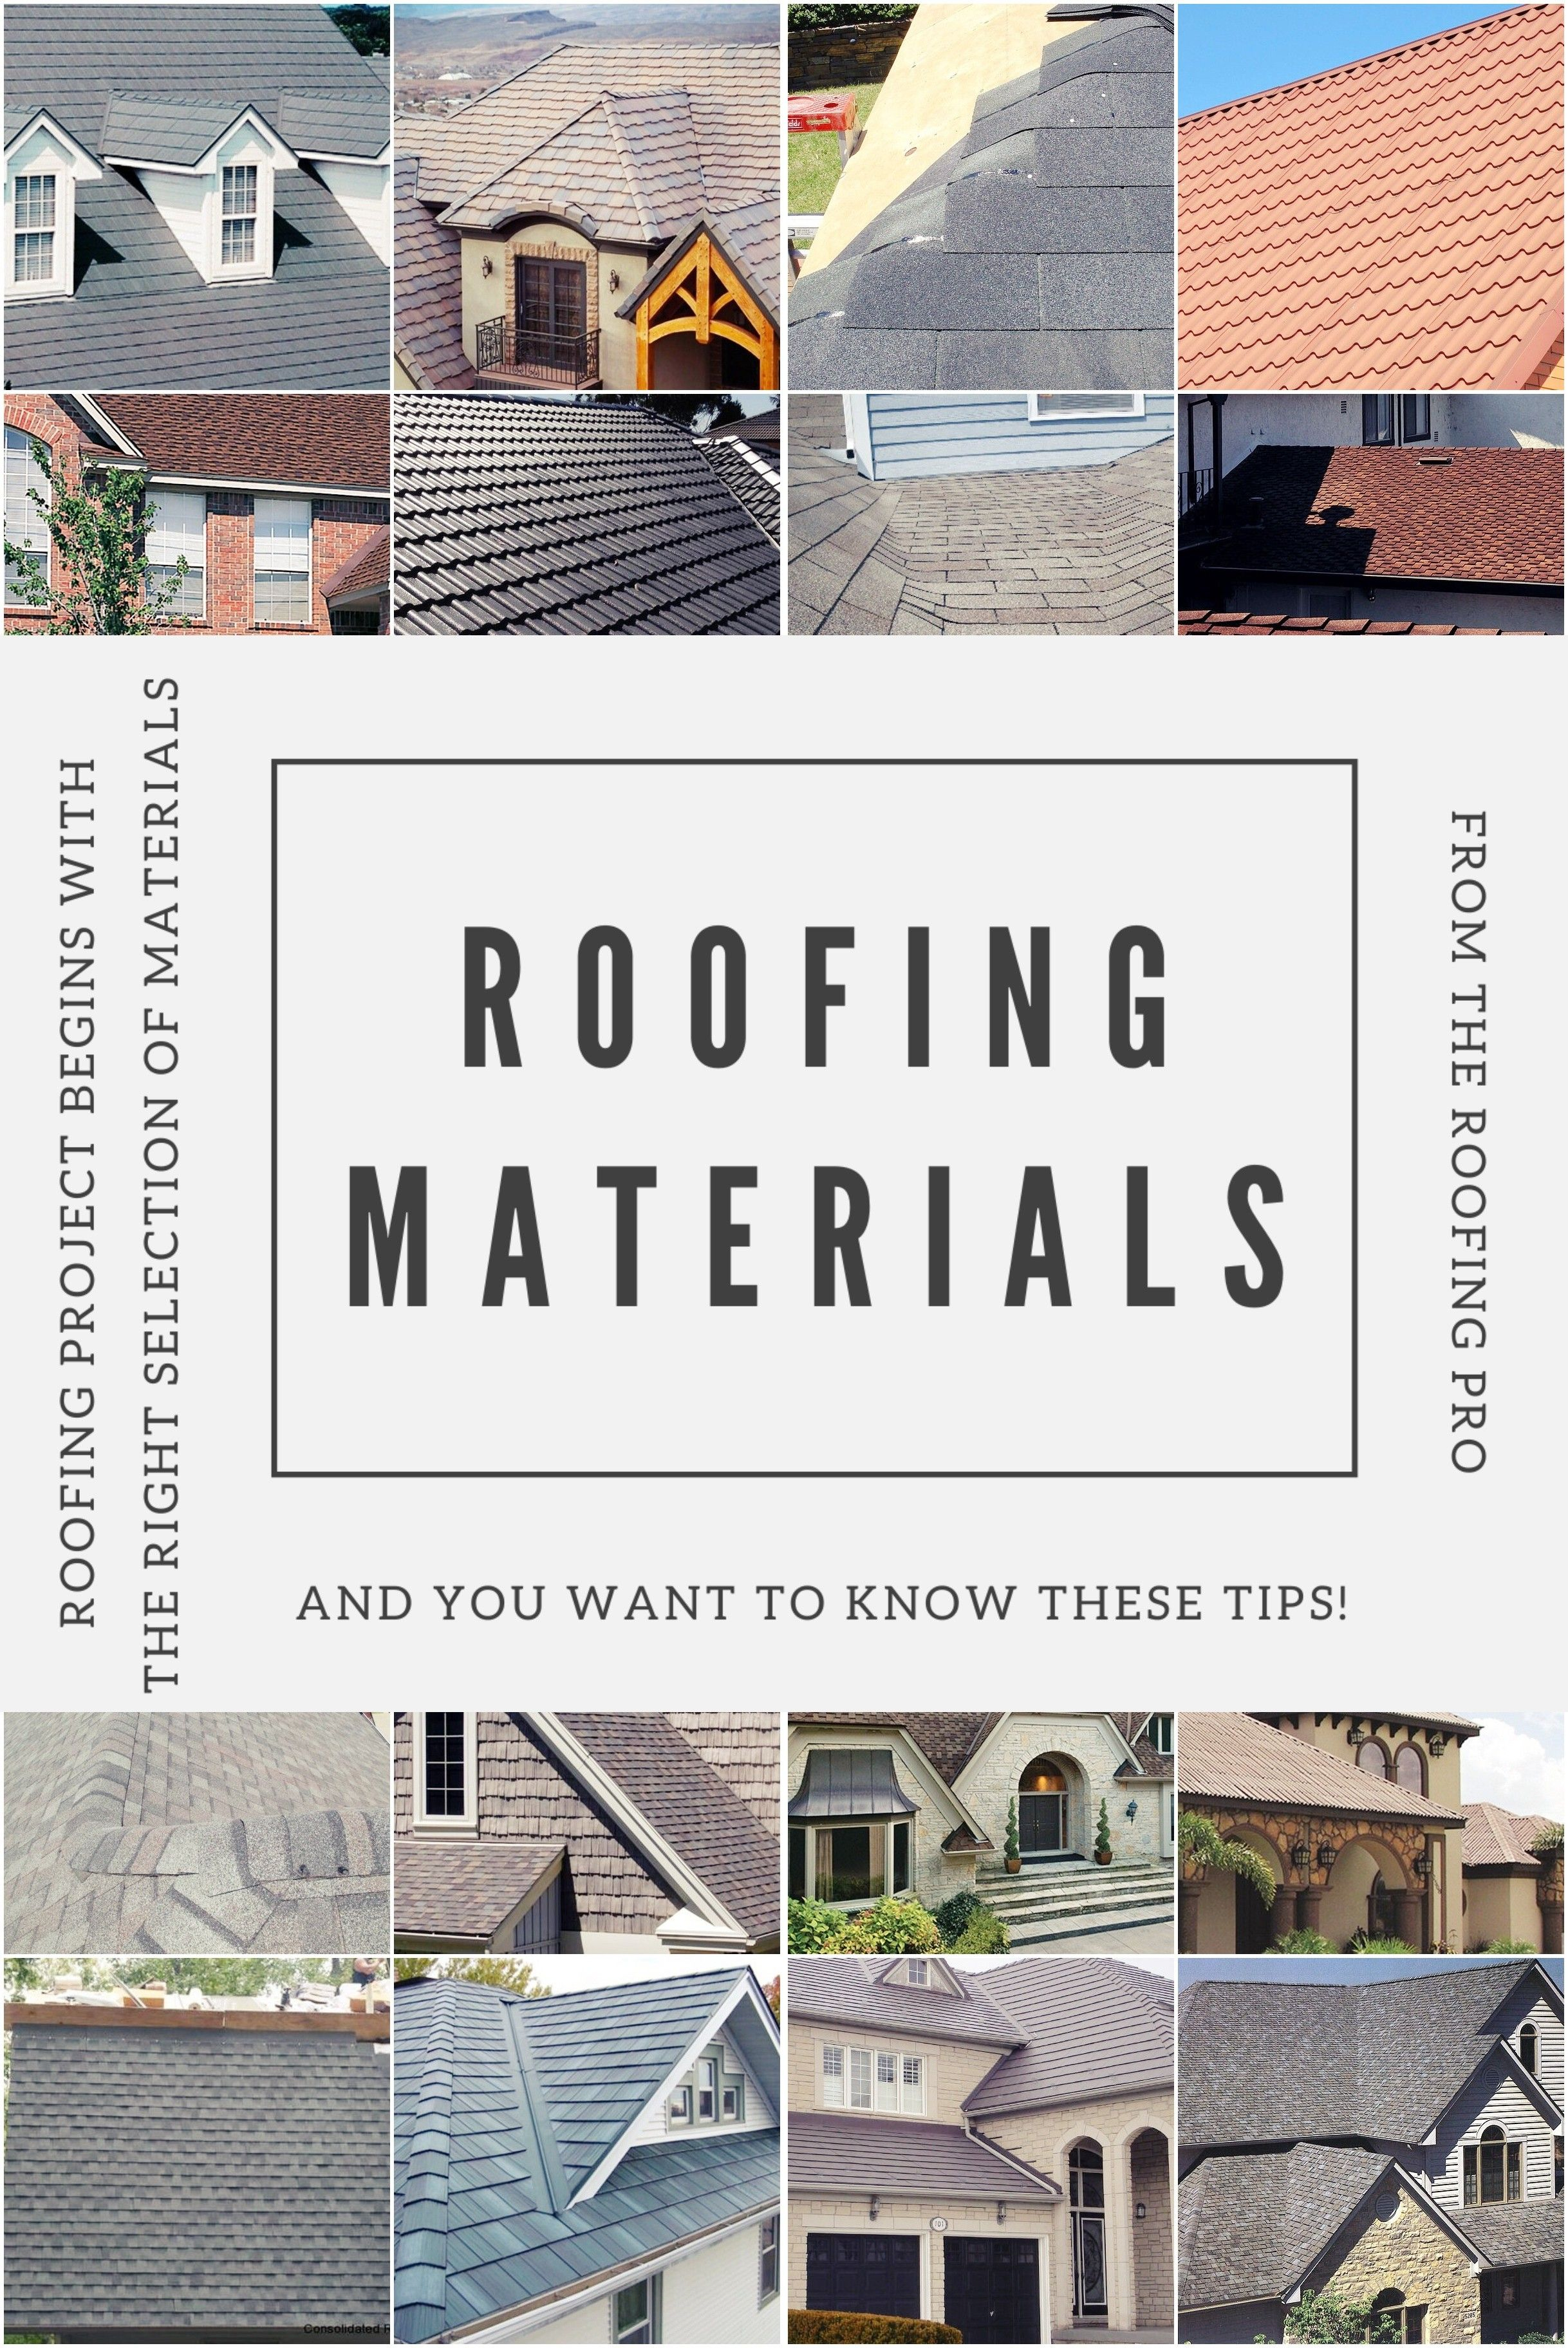 What You Must Know That Cause A Leaking Roof For More Information Visit Image Link In 2020 Roof Architecture Roof Architecture